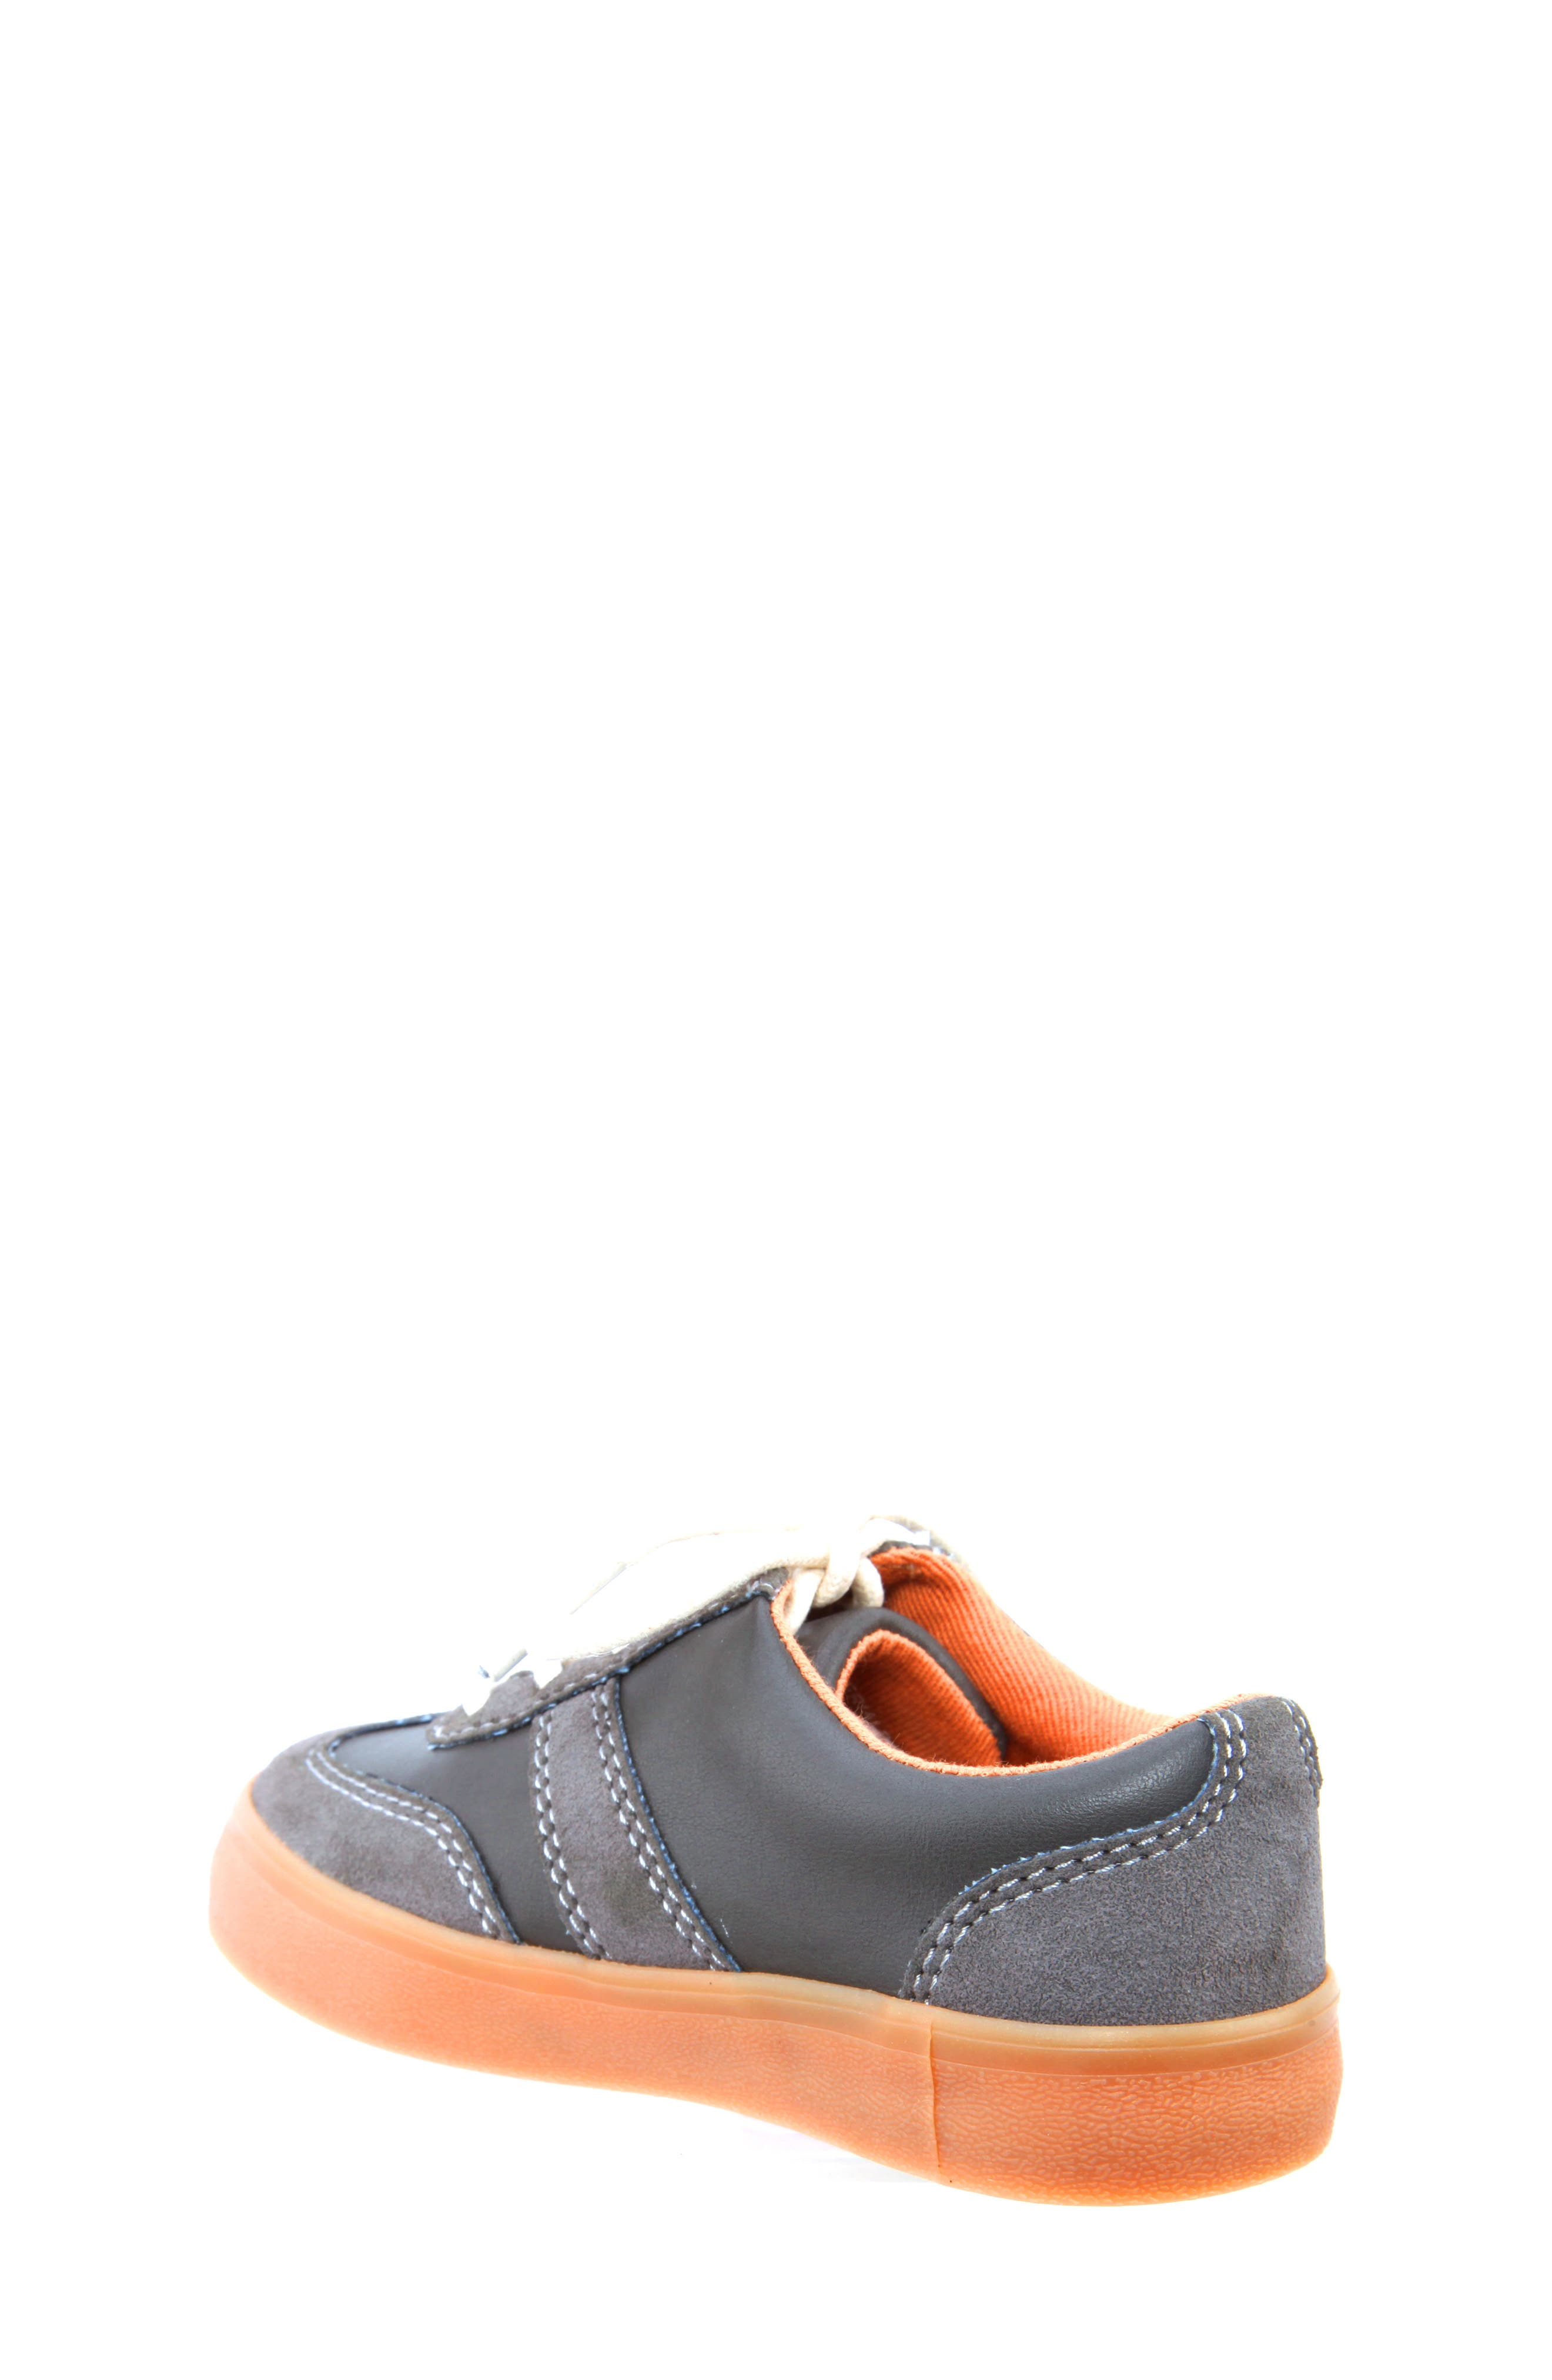 Neal Low Top Sneaker,                             Alternate thumbnail 2, color,                             064